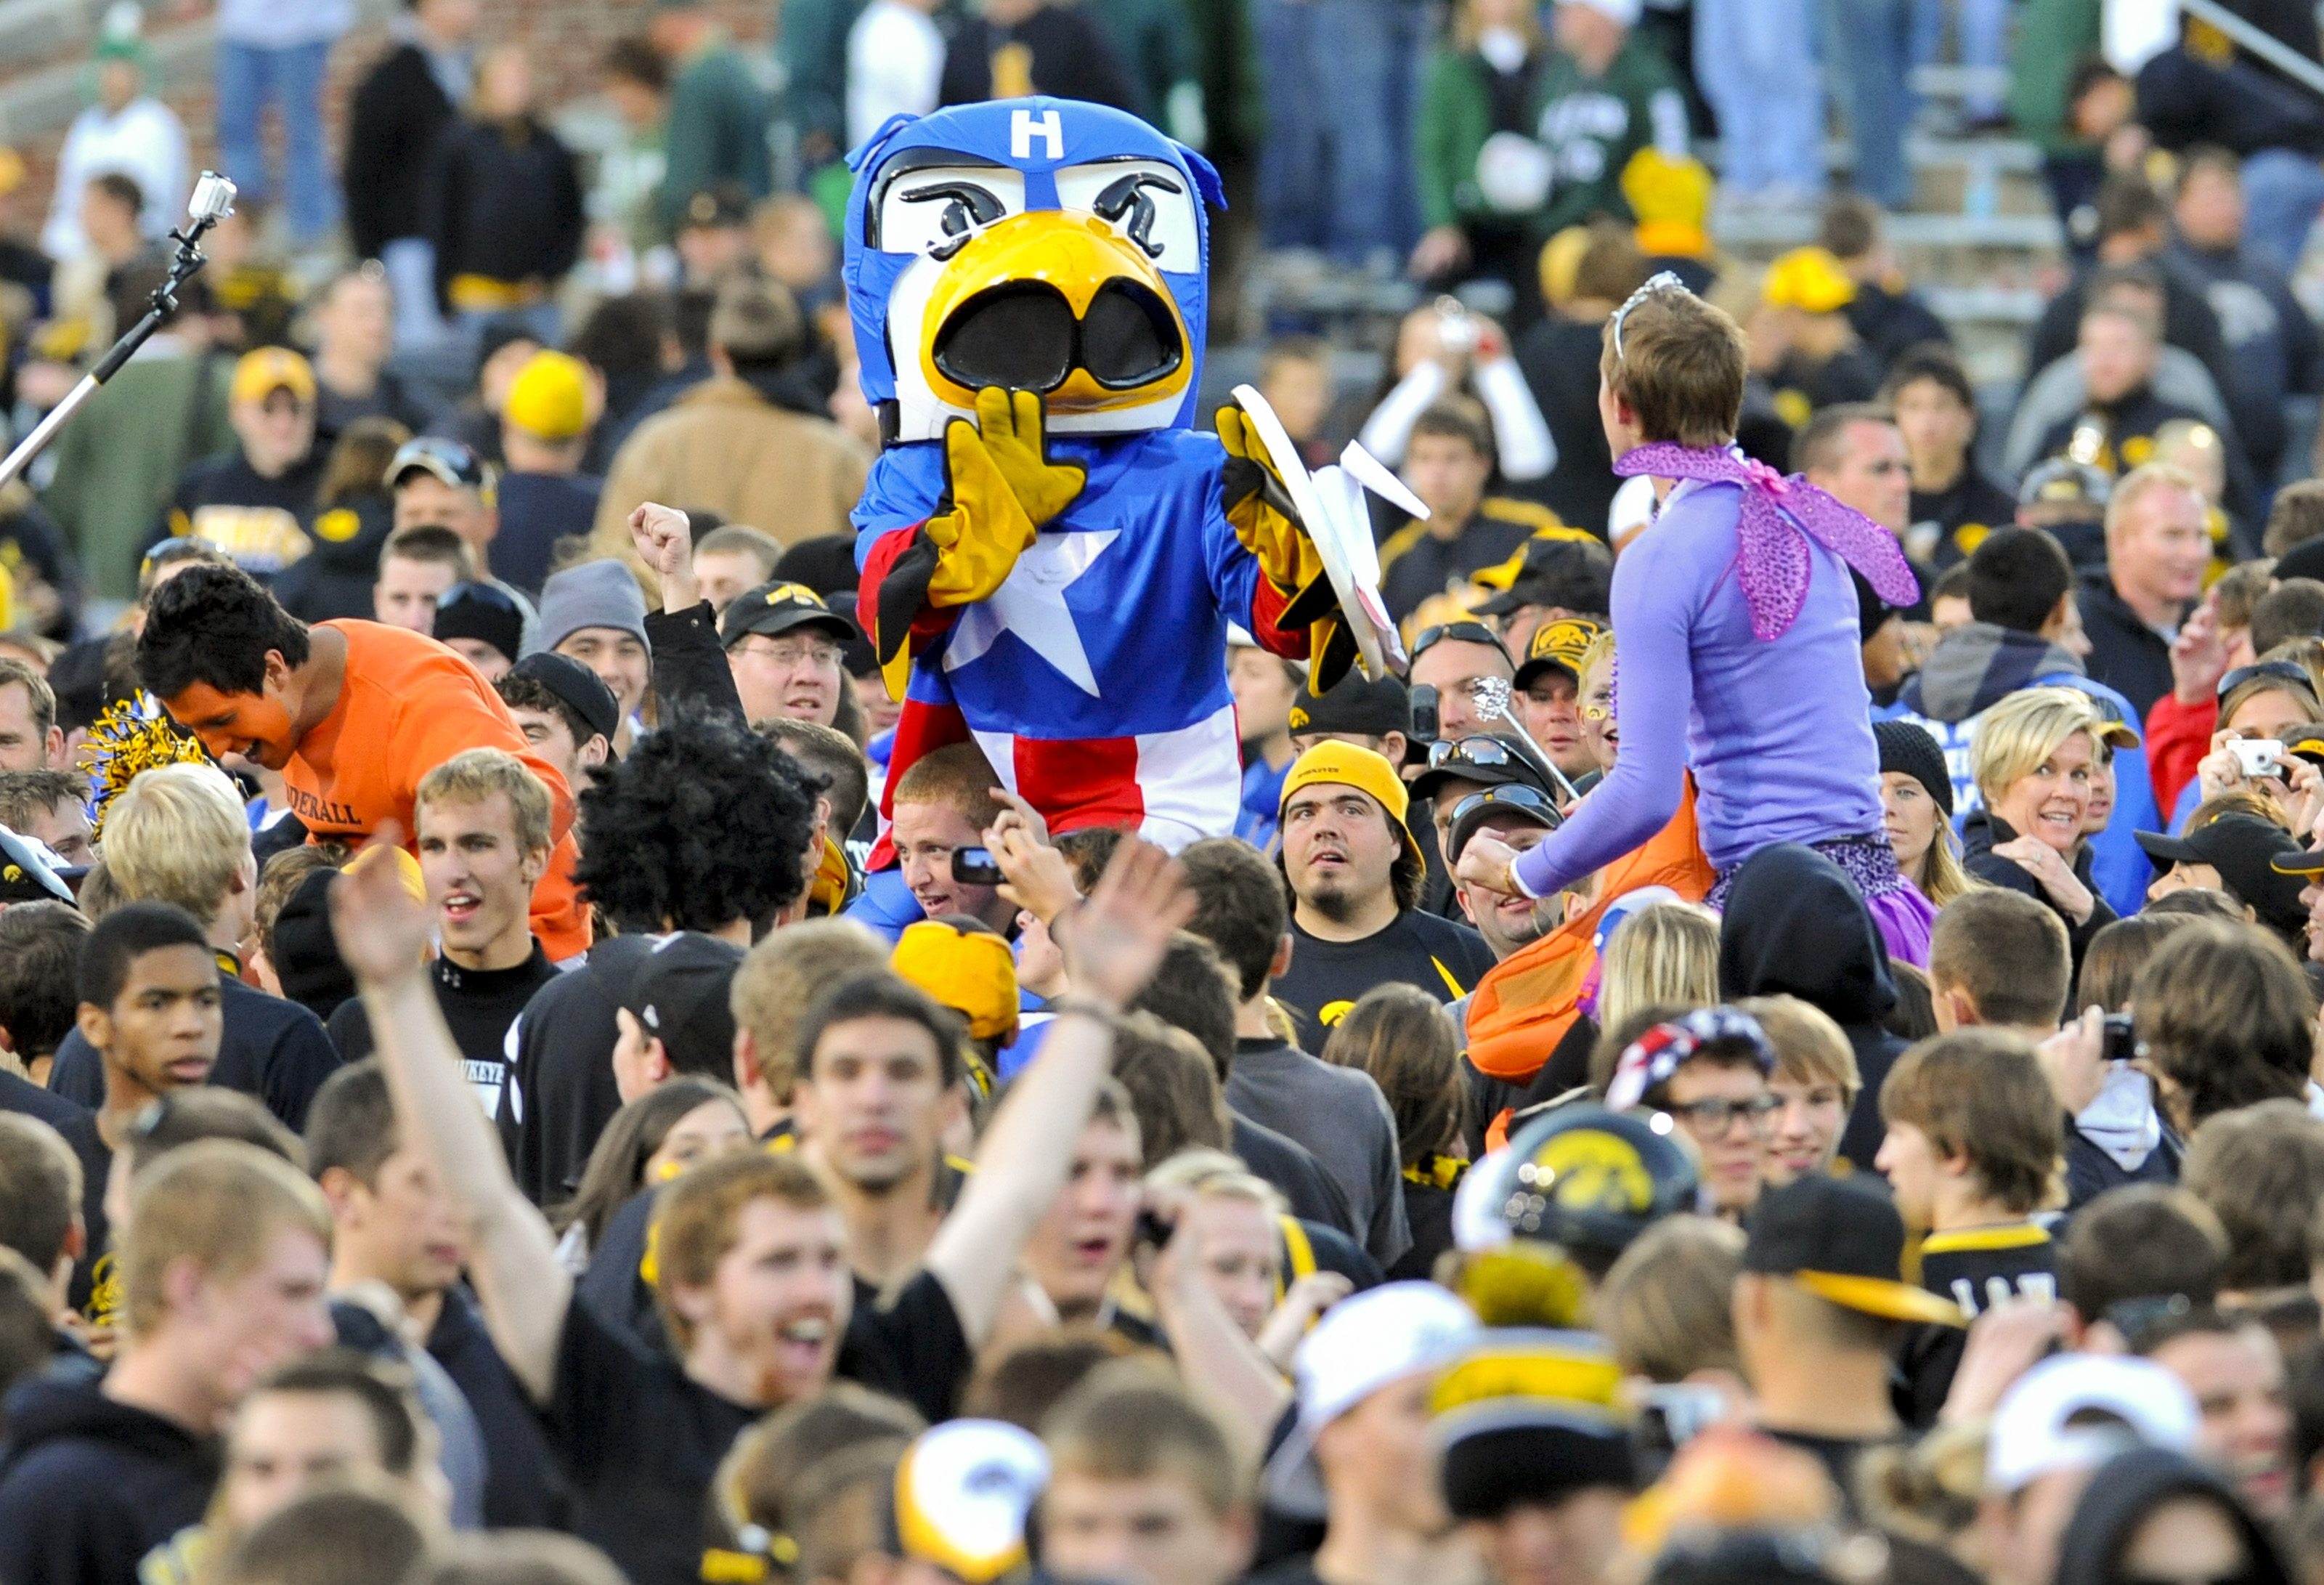 IOWA CITY, IA - OCTOBER 30: Dressed as Captain American Univeristy of Iowa mascot Herky the Hawk celebrates with fans after Iowa defeated the Michigan State Spartans at Kinnick Stadium on October 30, 2010 in Iowa City, Iowa. Iowa won 37-6 over Michigan St